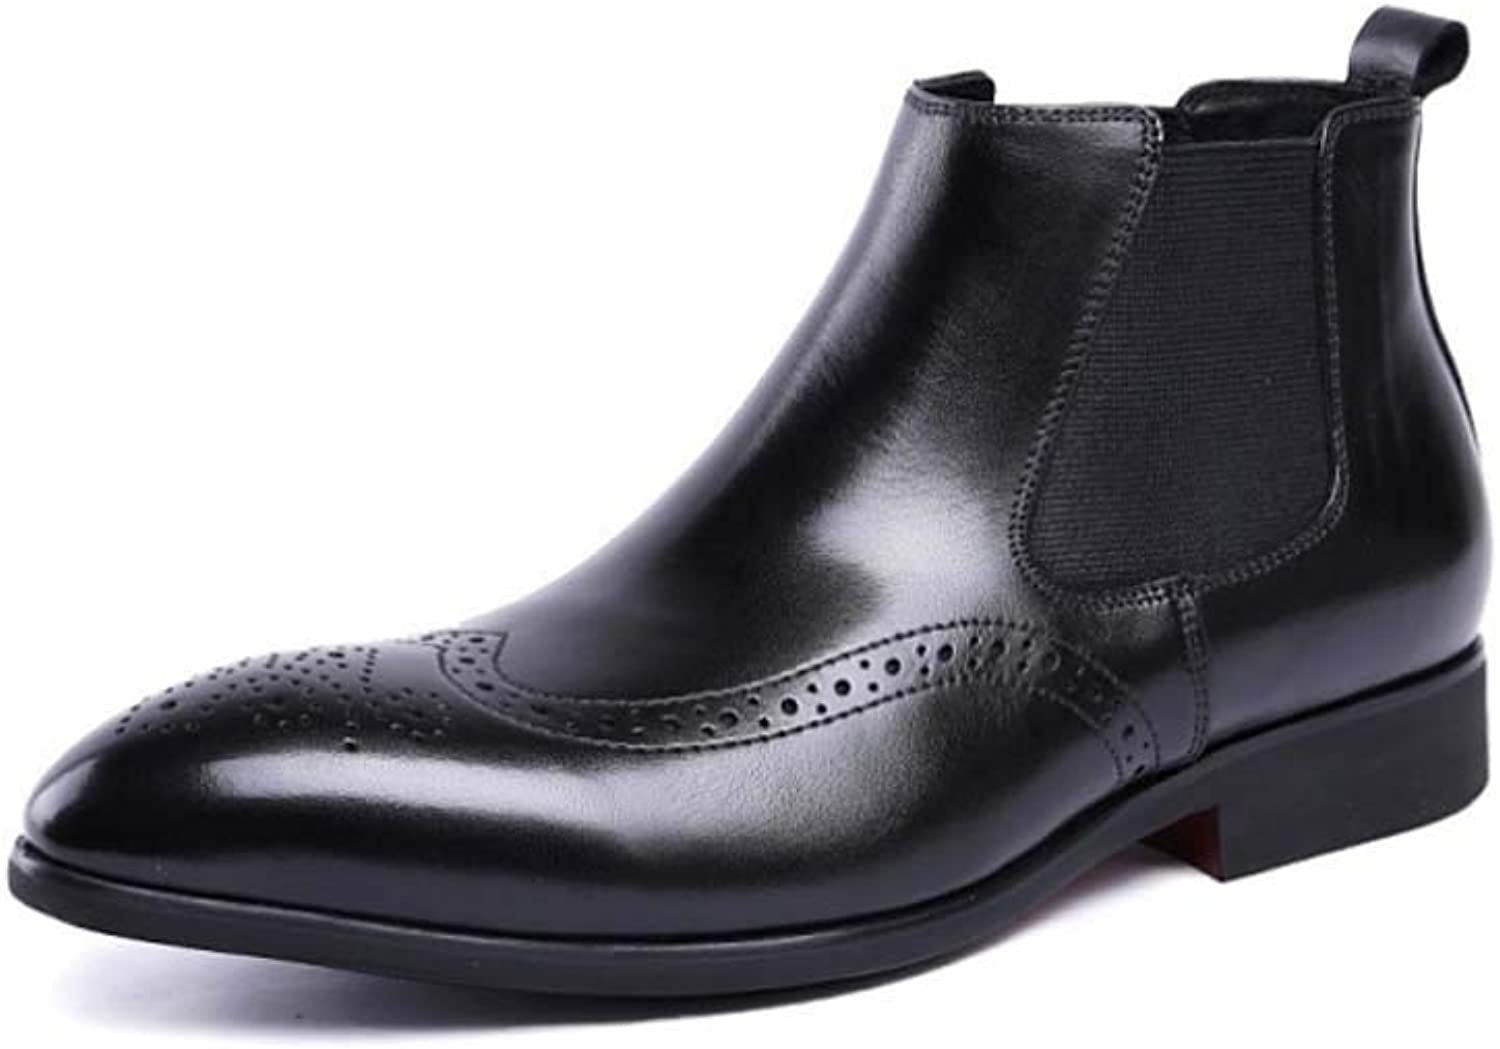 Mens Leather Chelsea Boots in Black - Formal Casual Low Ankle Boots Waterproof Martin Boots